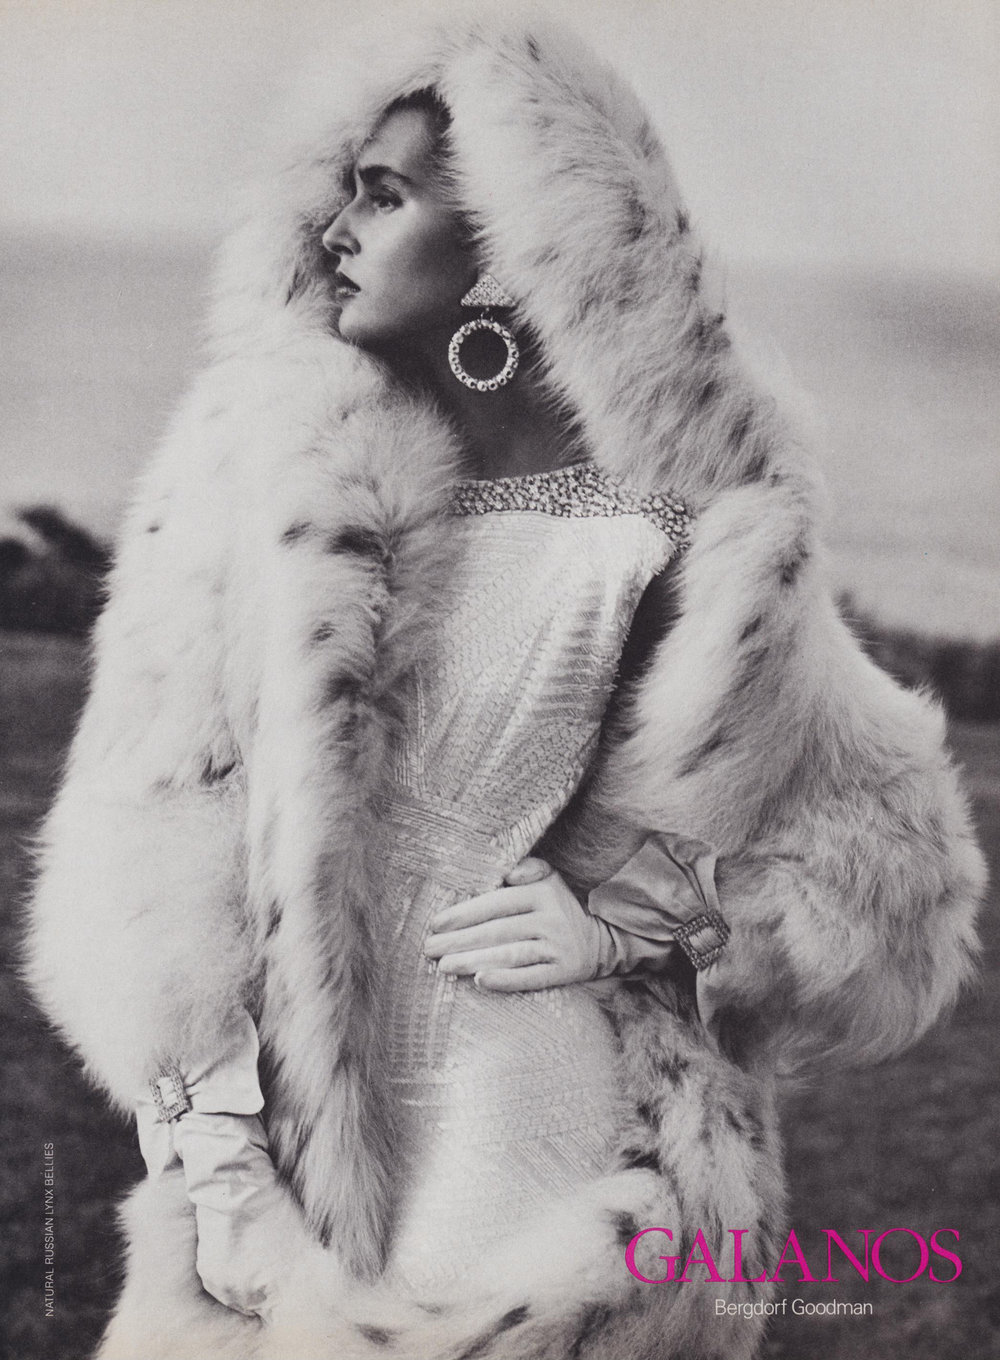 An ad for Galanos at Bergdorf Goodman, featuring his fully beaded white evening dress and lynx coat for A/W 1985.